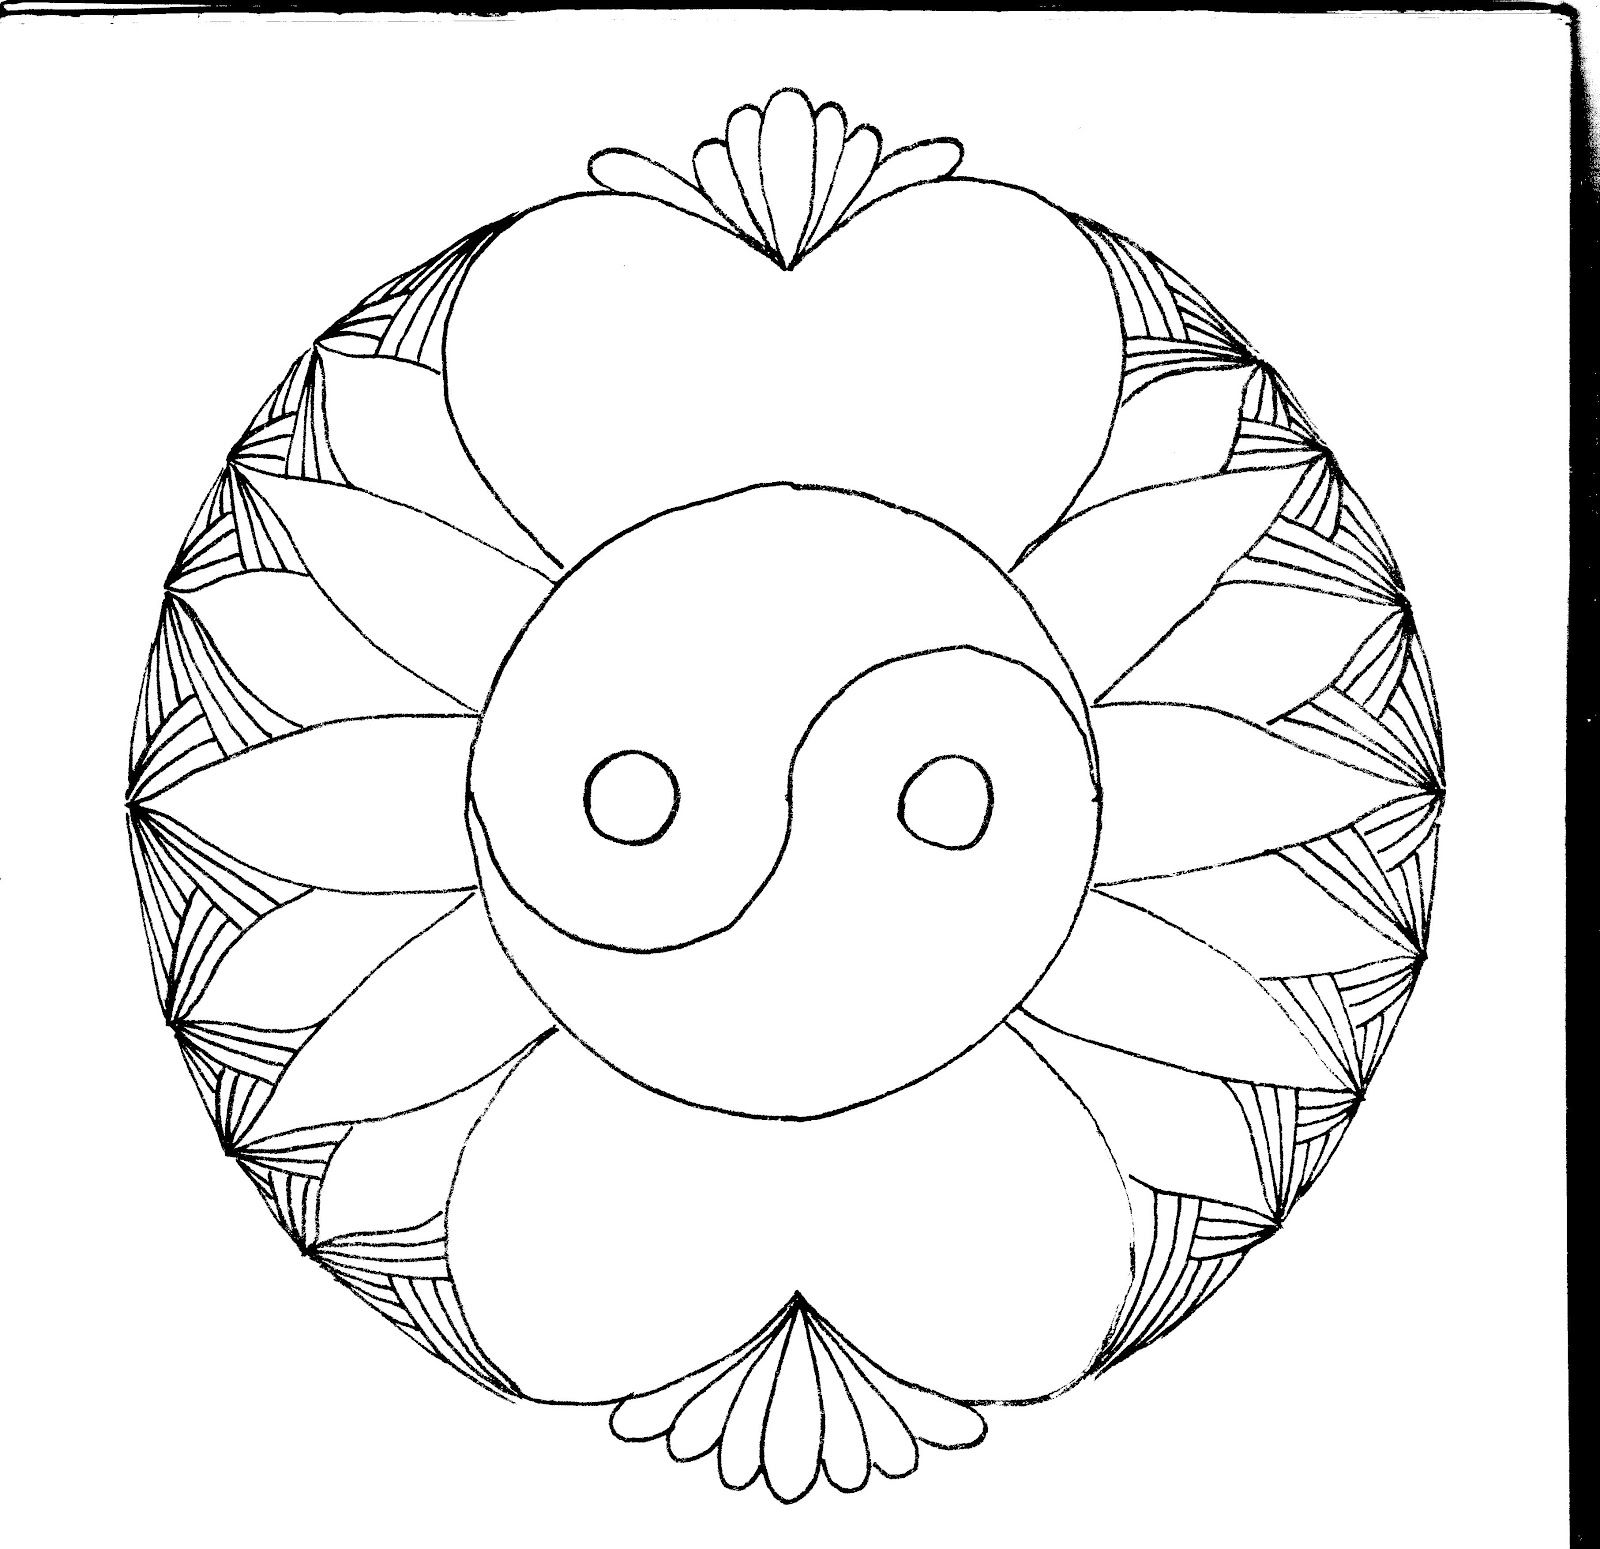 Ying Yang Coloring Pages Yin Yang Coloring Pages Mosaic Patterns